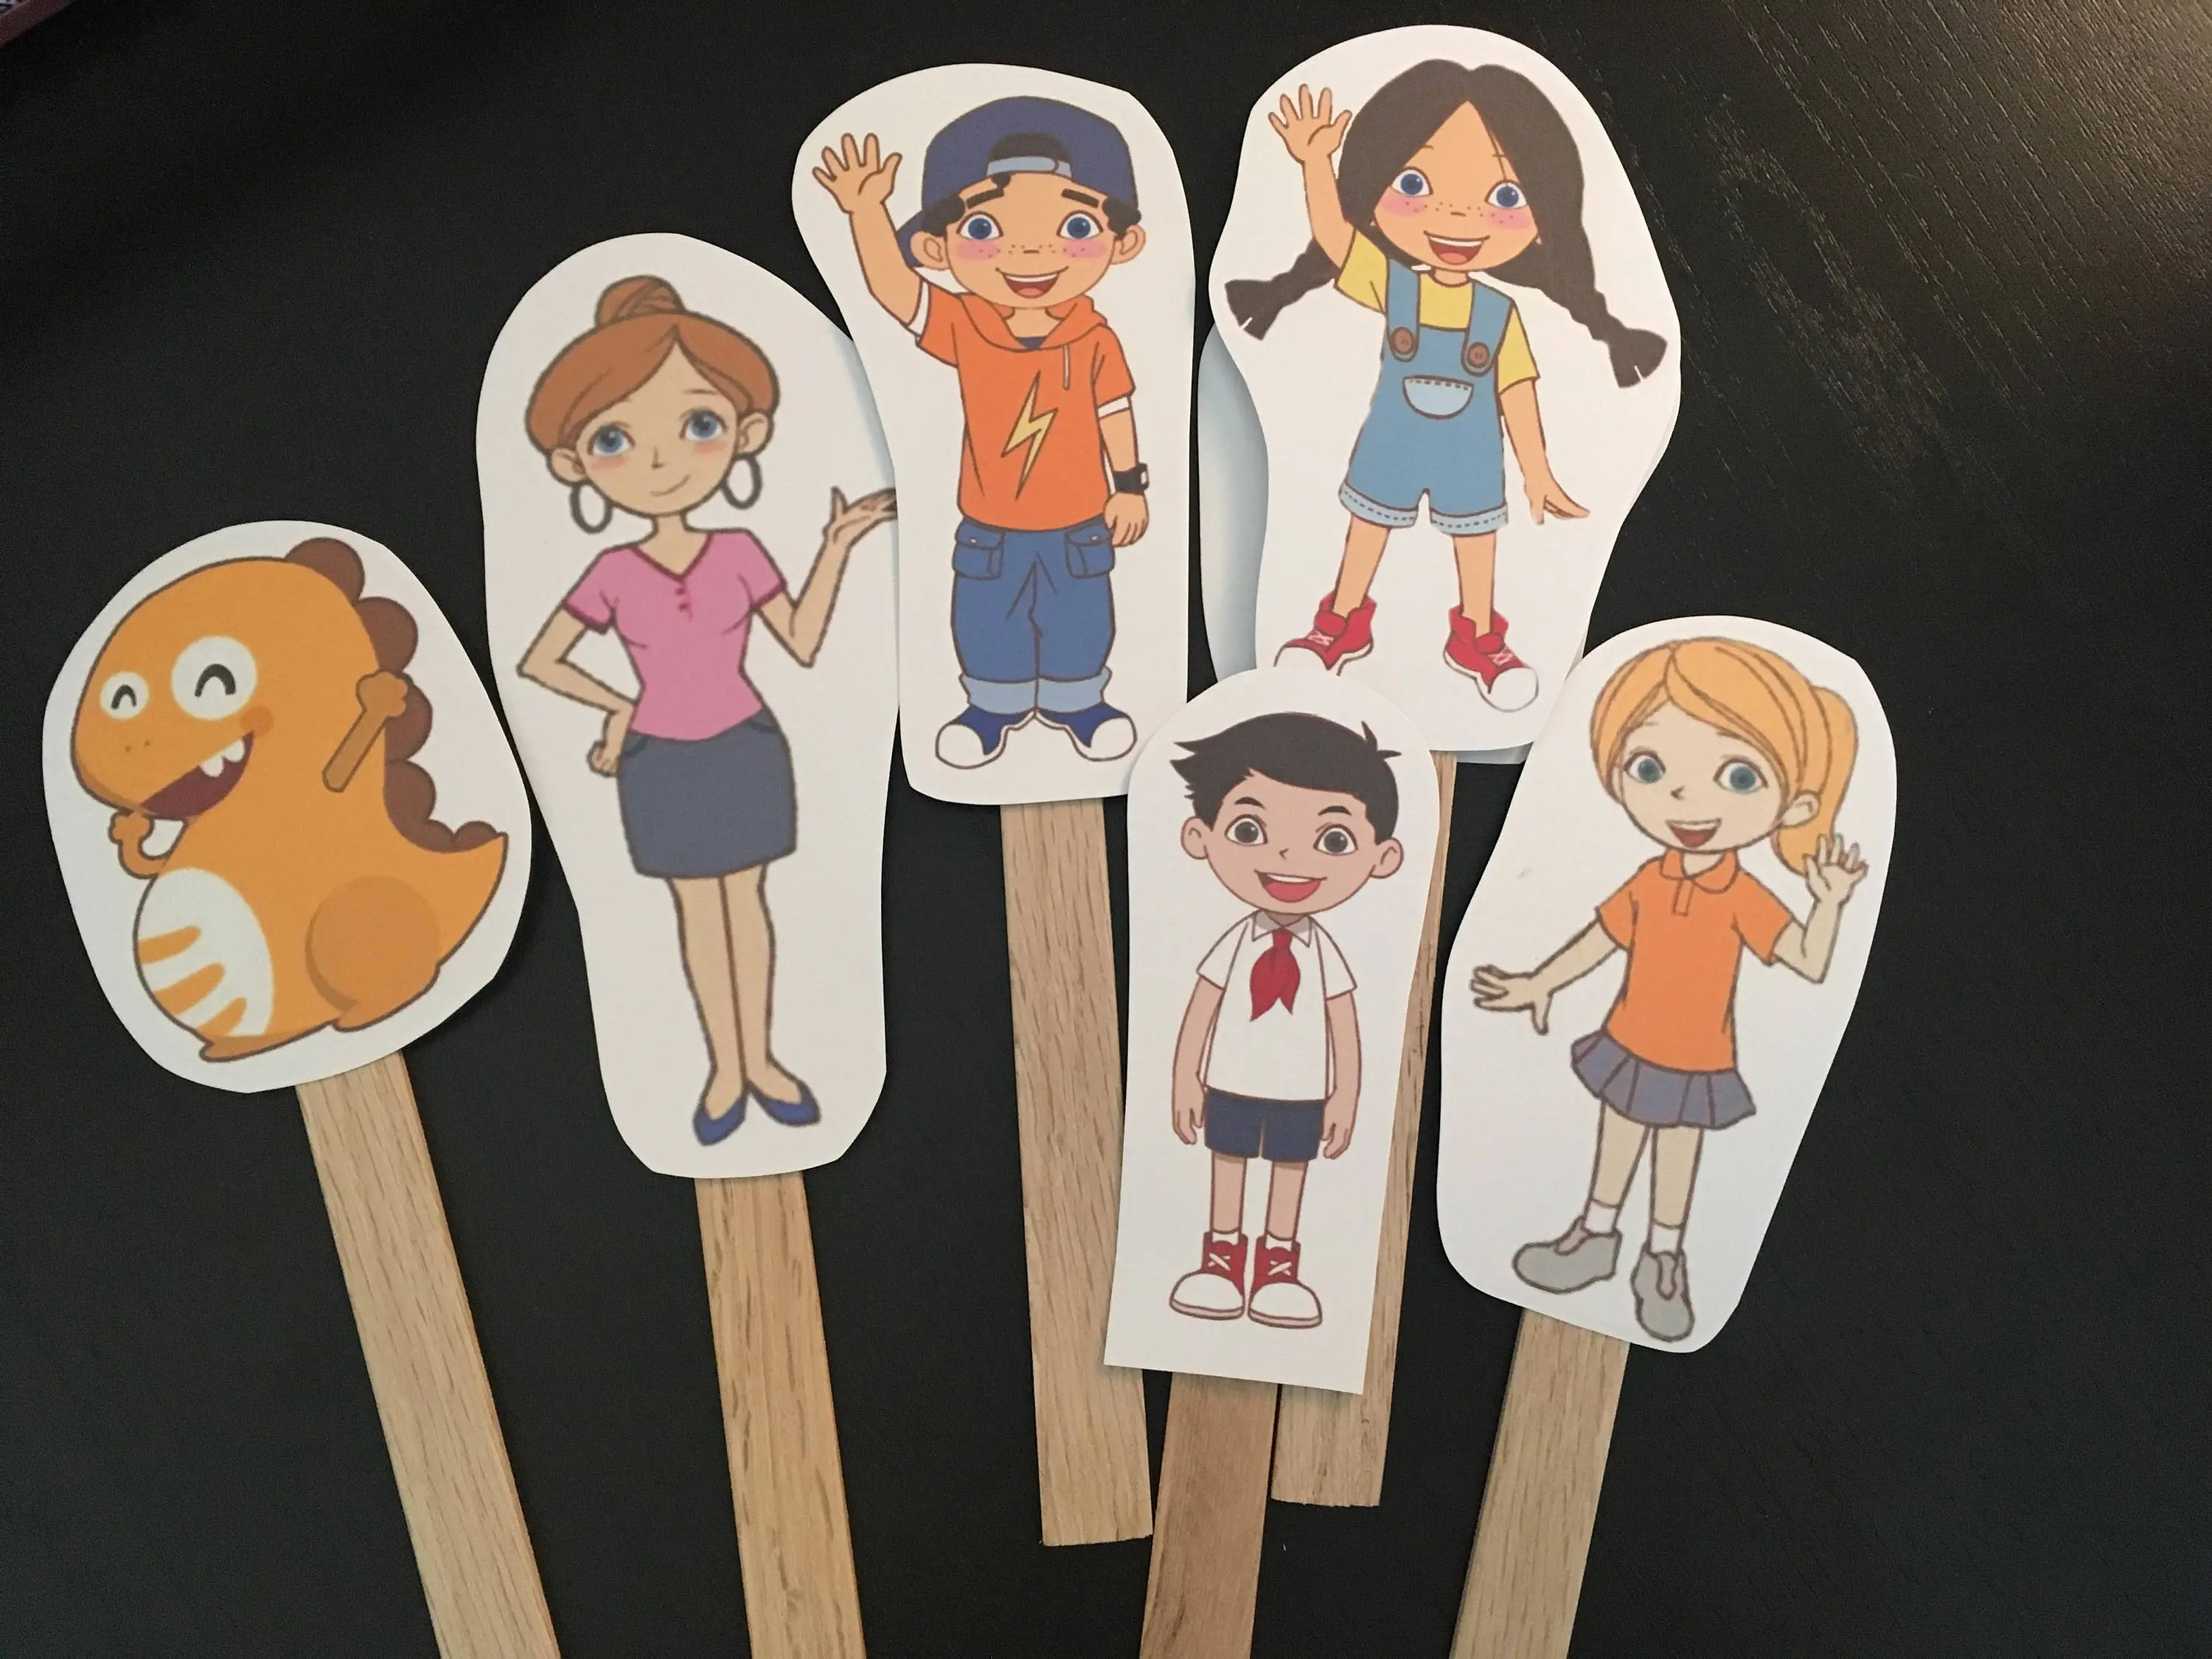 picture about Vipkid Mike and Meg Printable called Vipkid Figures - Researching Mars